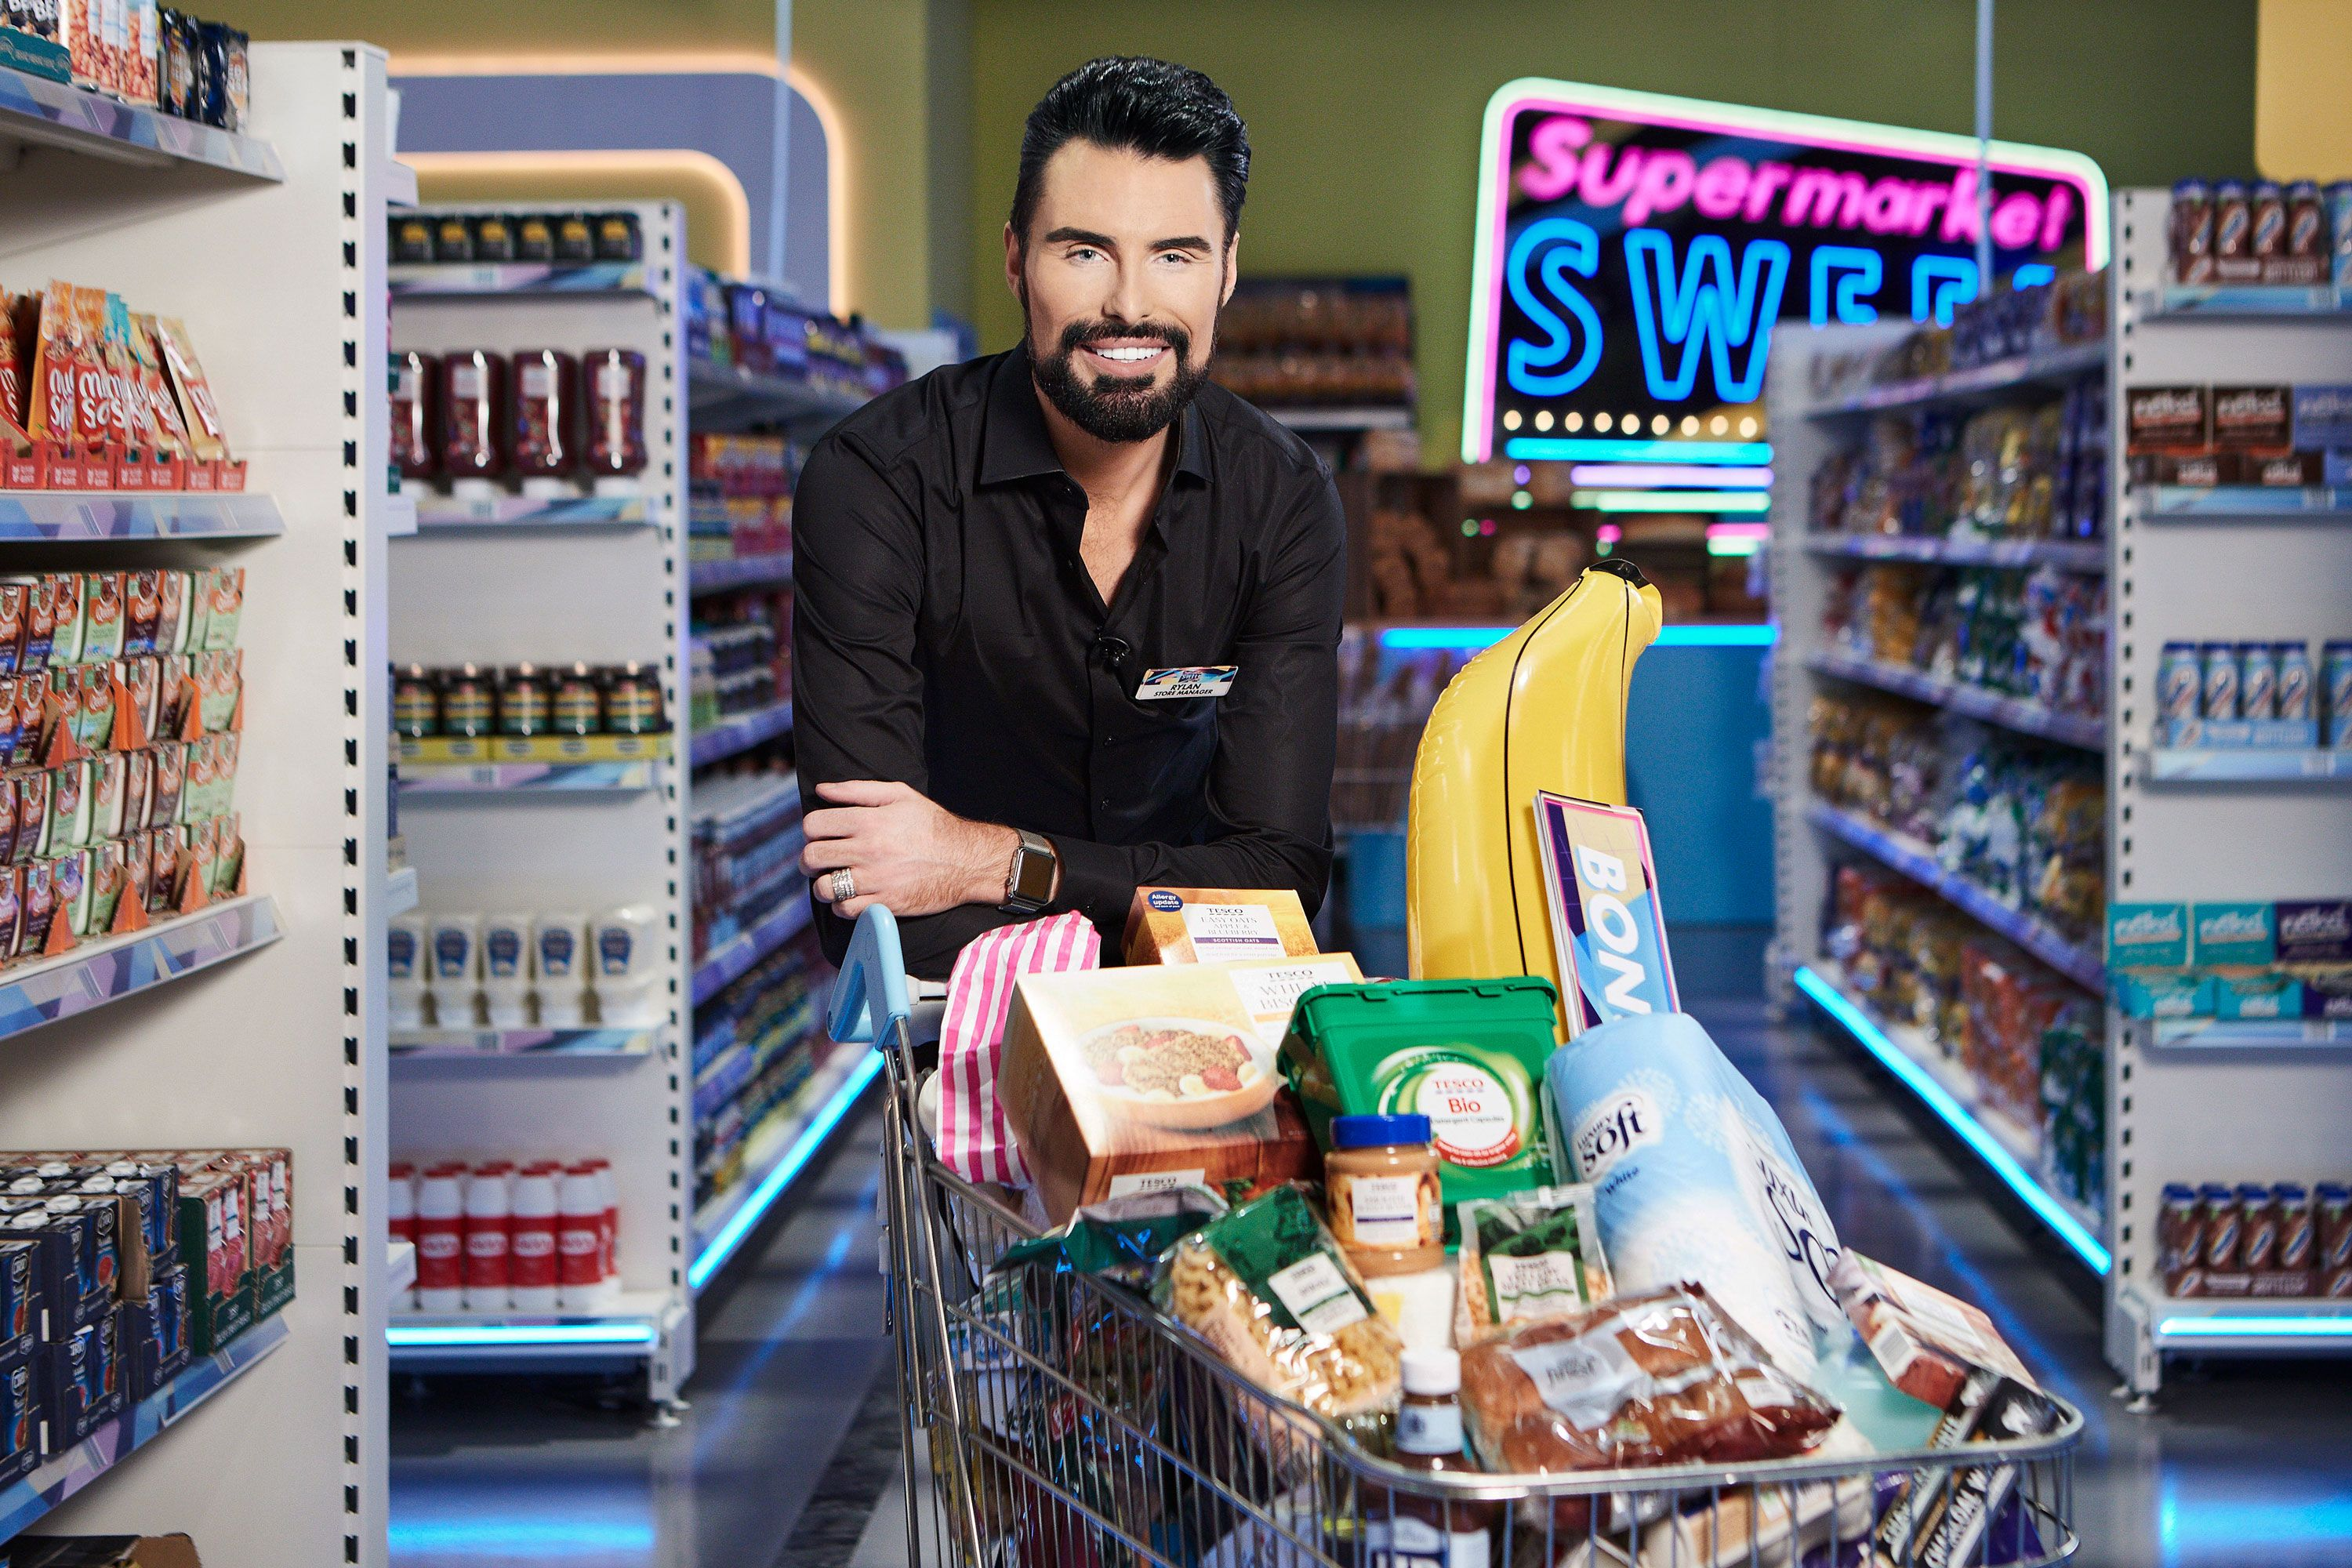 Rylan Clark-Neal responds to trolls who criticise Supermarket Sweep